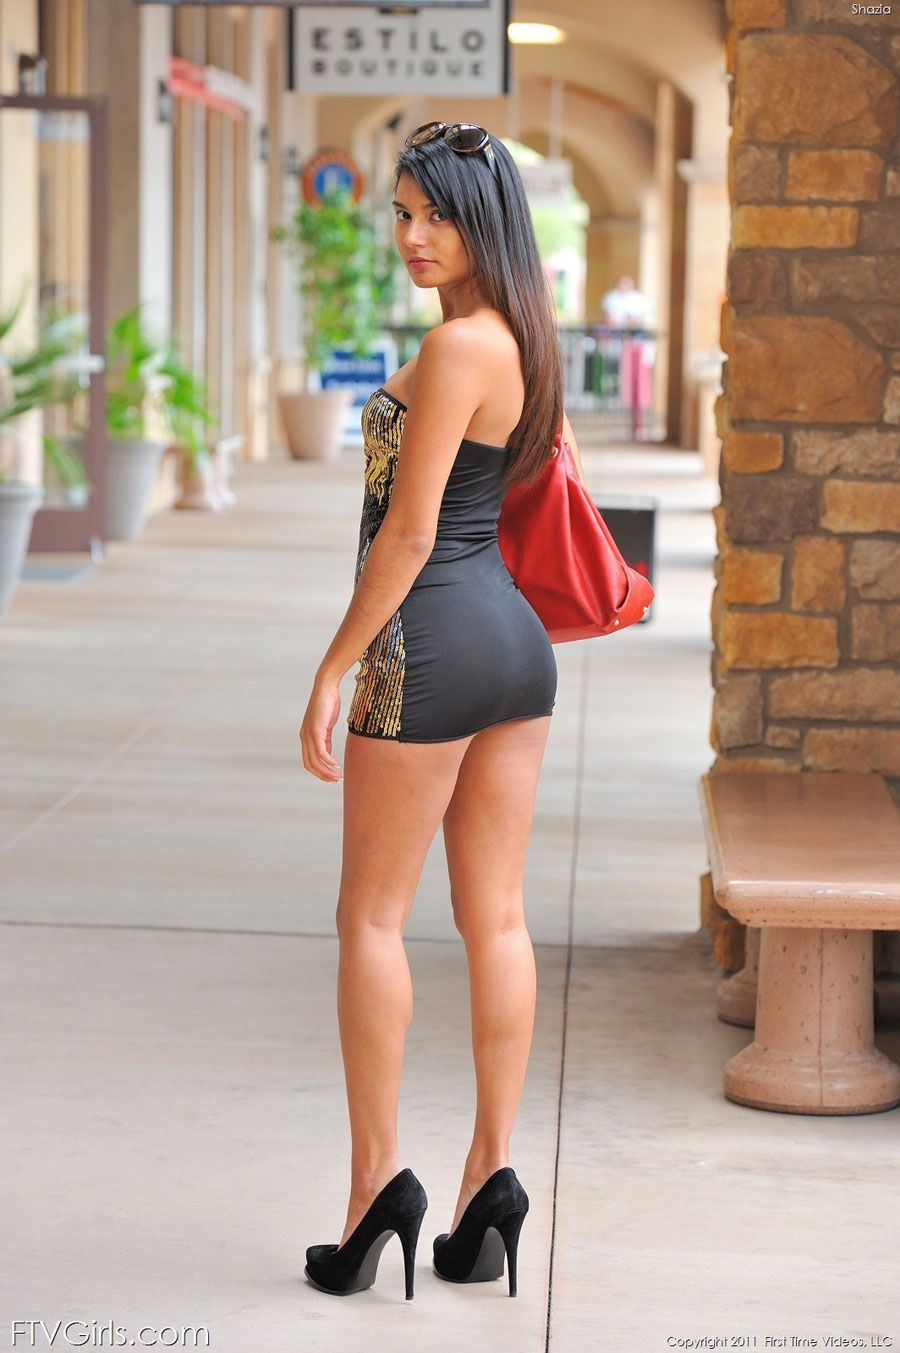 Remarkable, the Hot latina mini skirt apologise, but